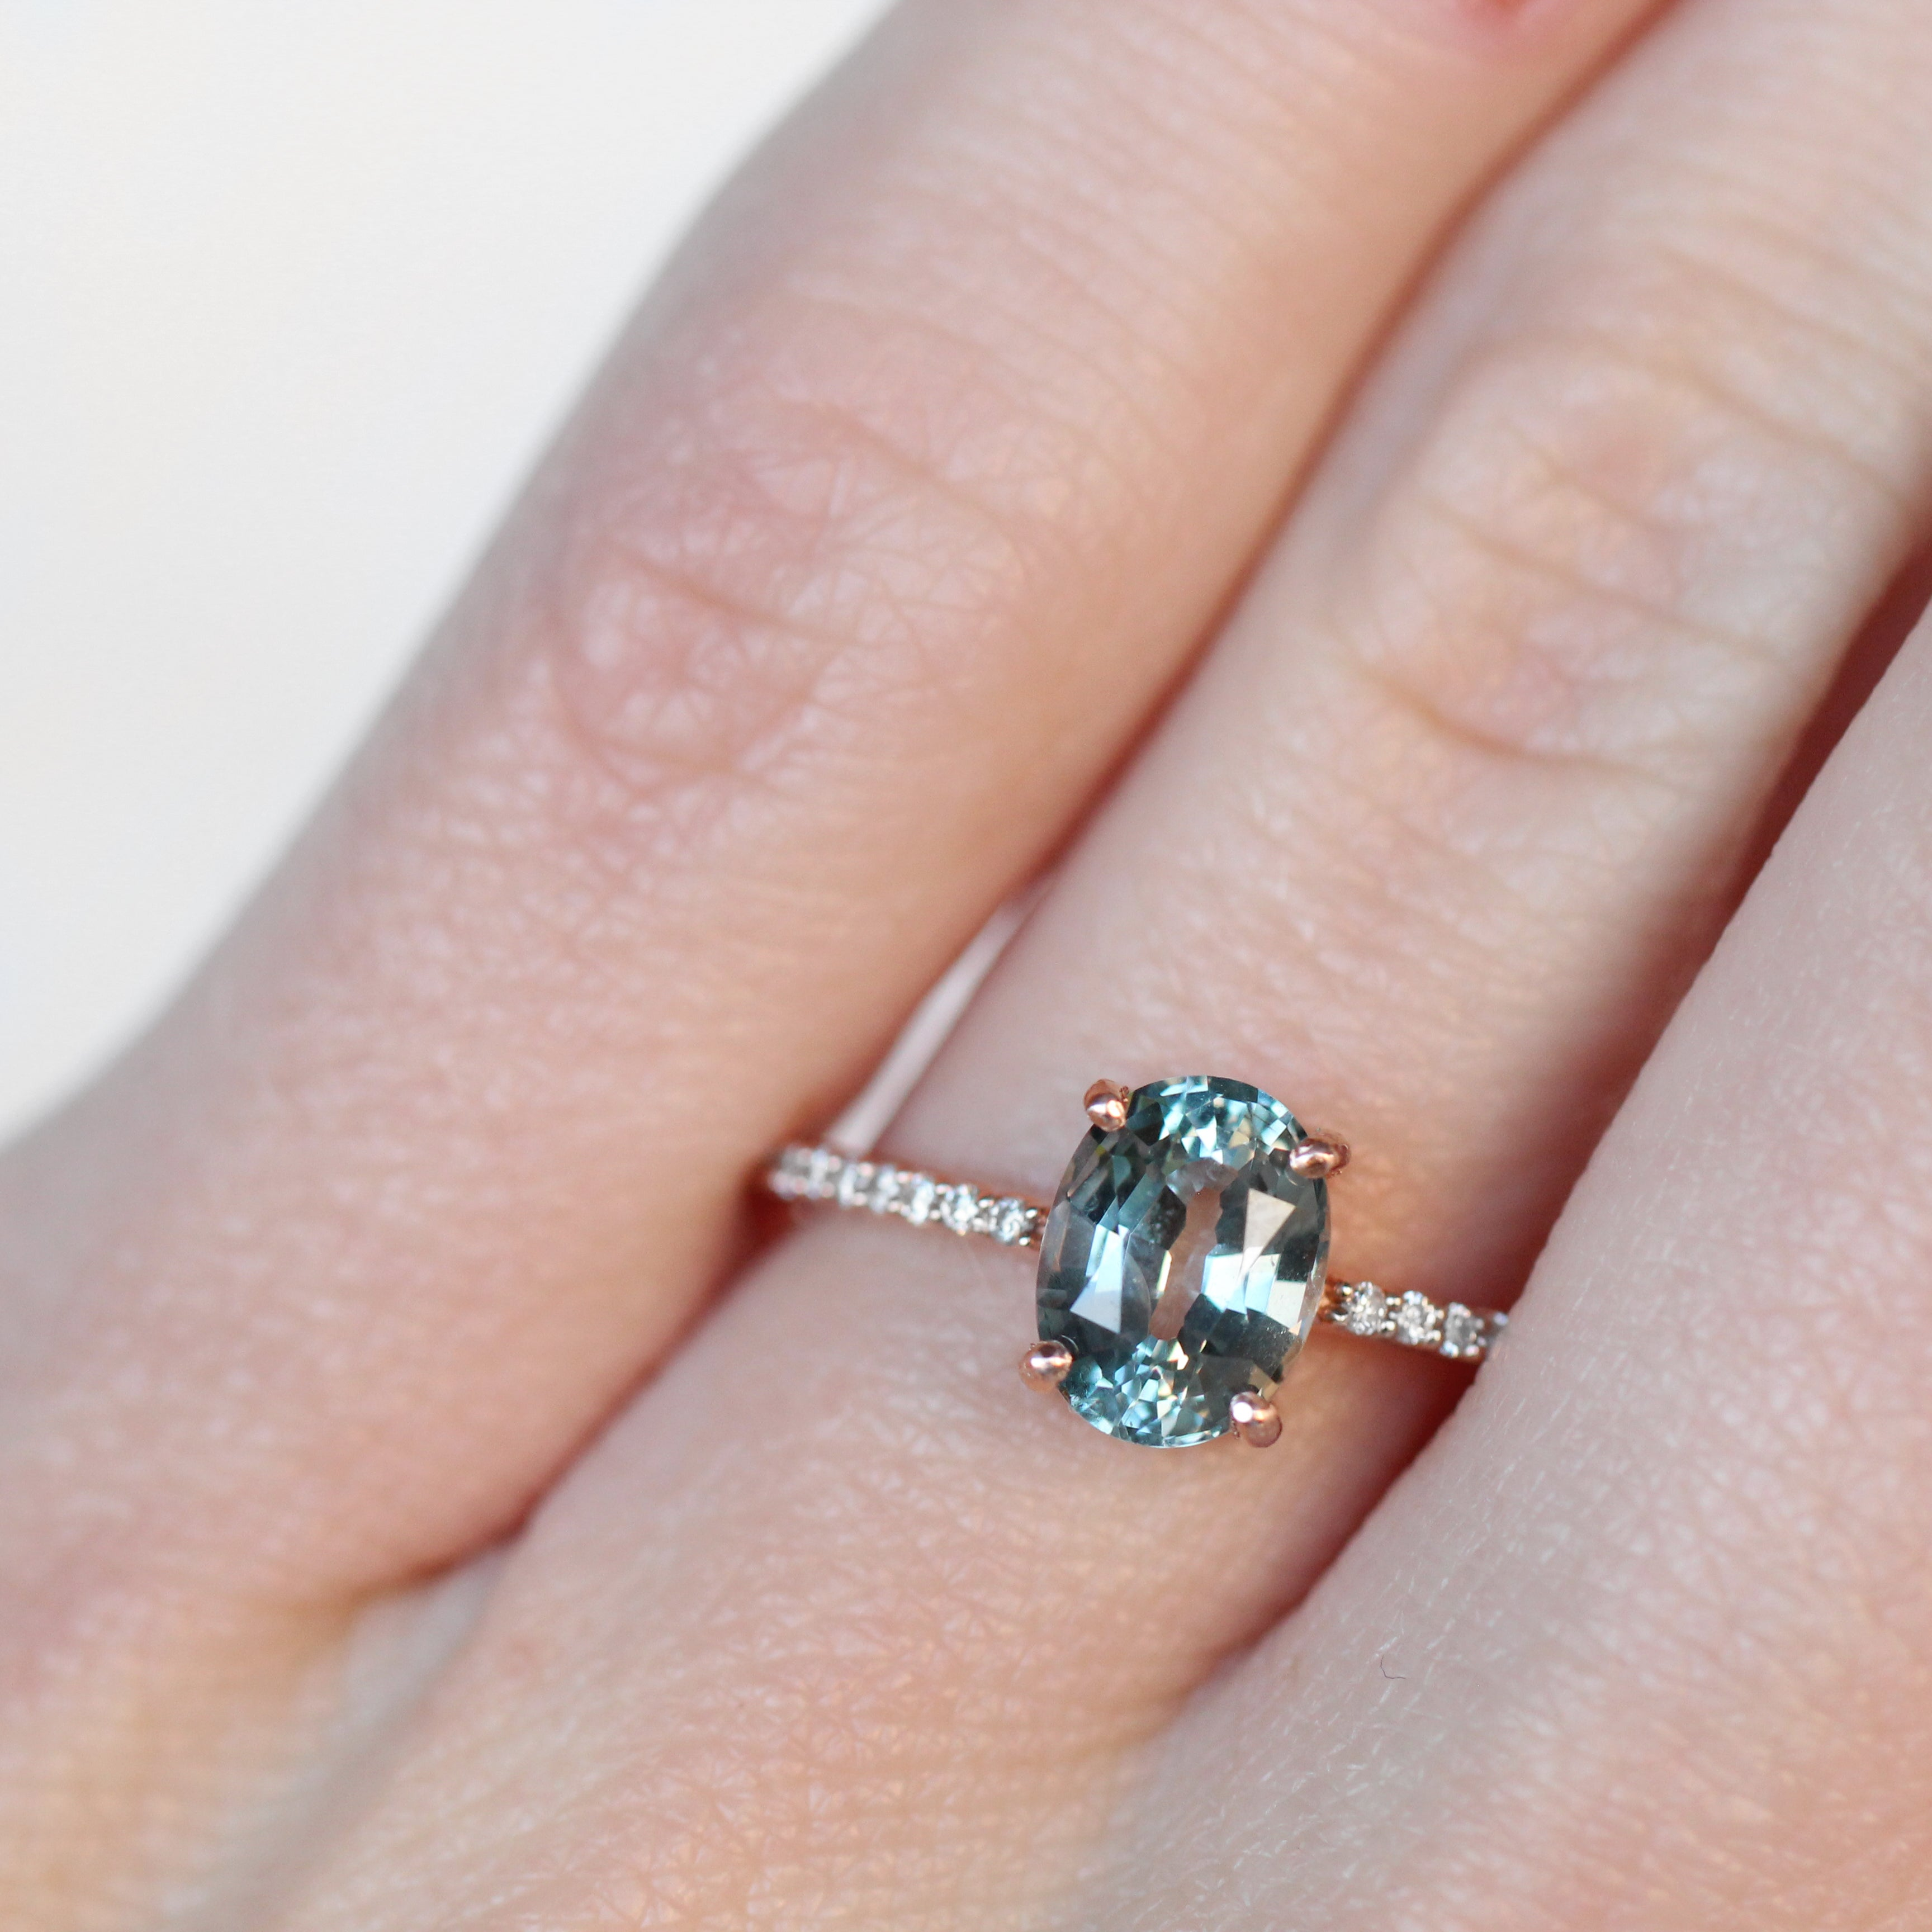 Mia Ring with 2.11 Carat Oval Blue green teal sapphire in 10k Rose Gold- Ready to Size and Ship - Celestial Diamonds ® by Midwinter Co.